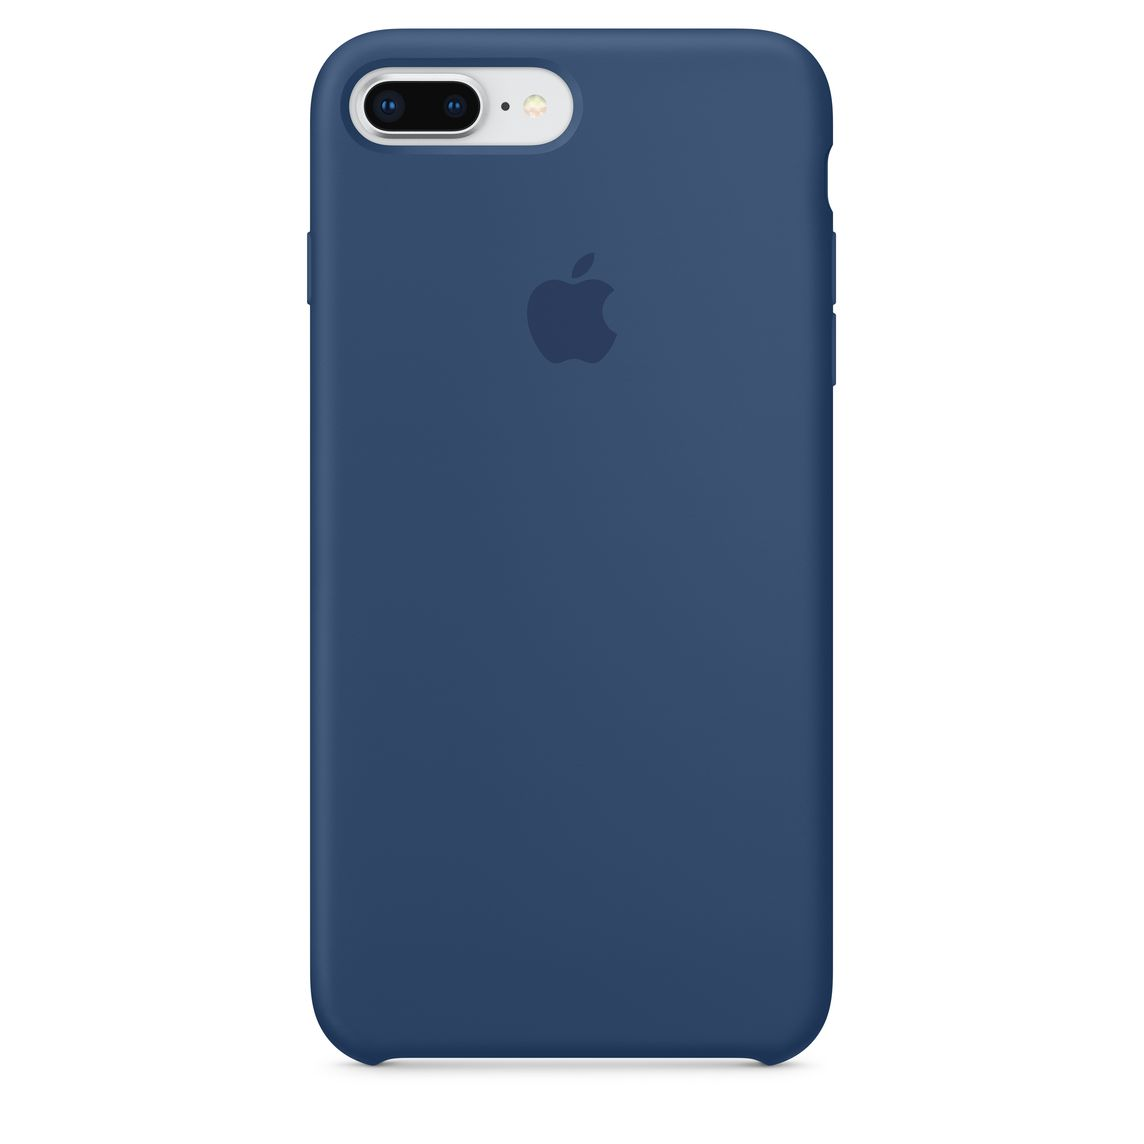 size 40 2c22f 63e71 iPhone 8 Plus / 7 Plus Silicone Case - Blue Cobalt